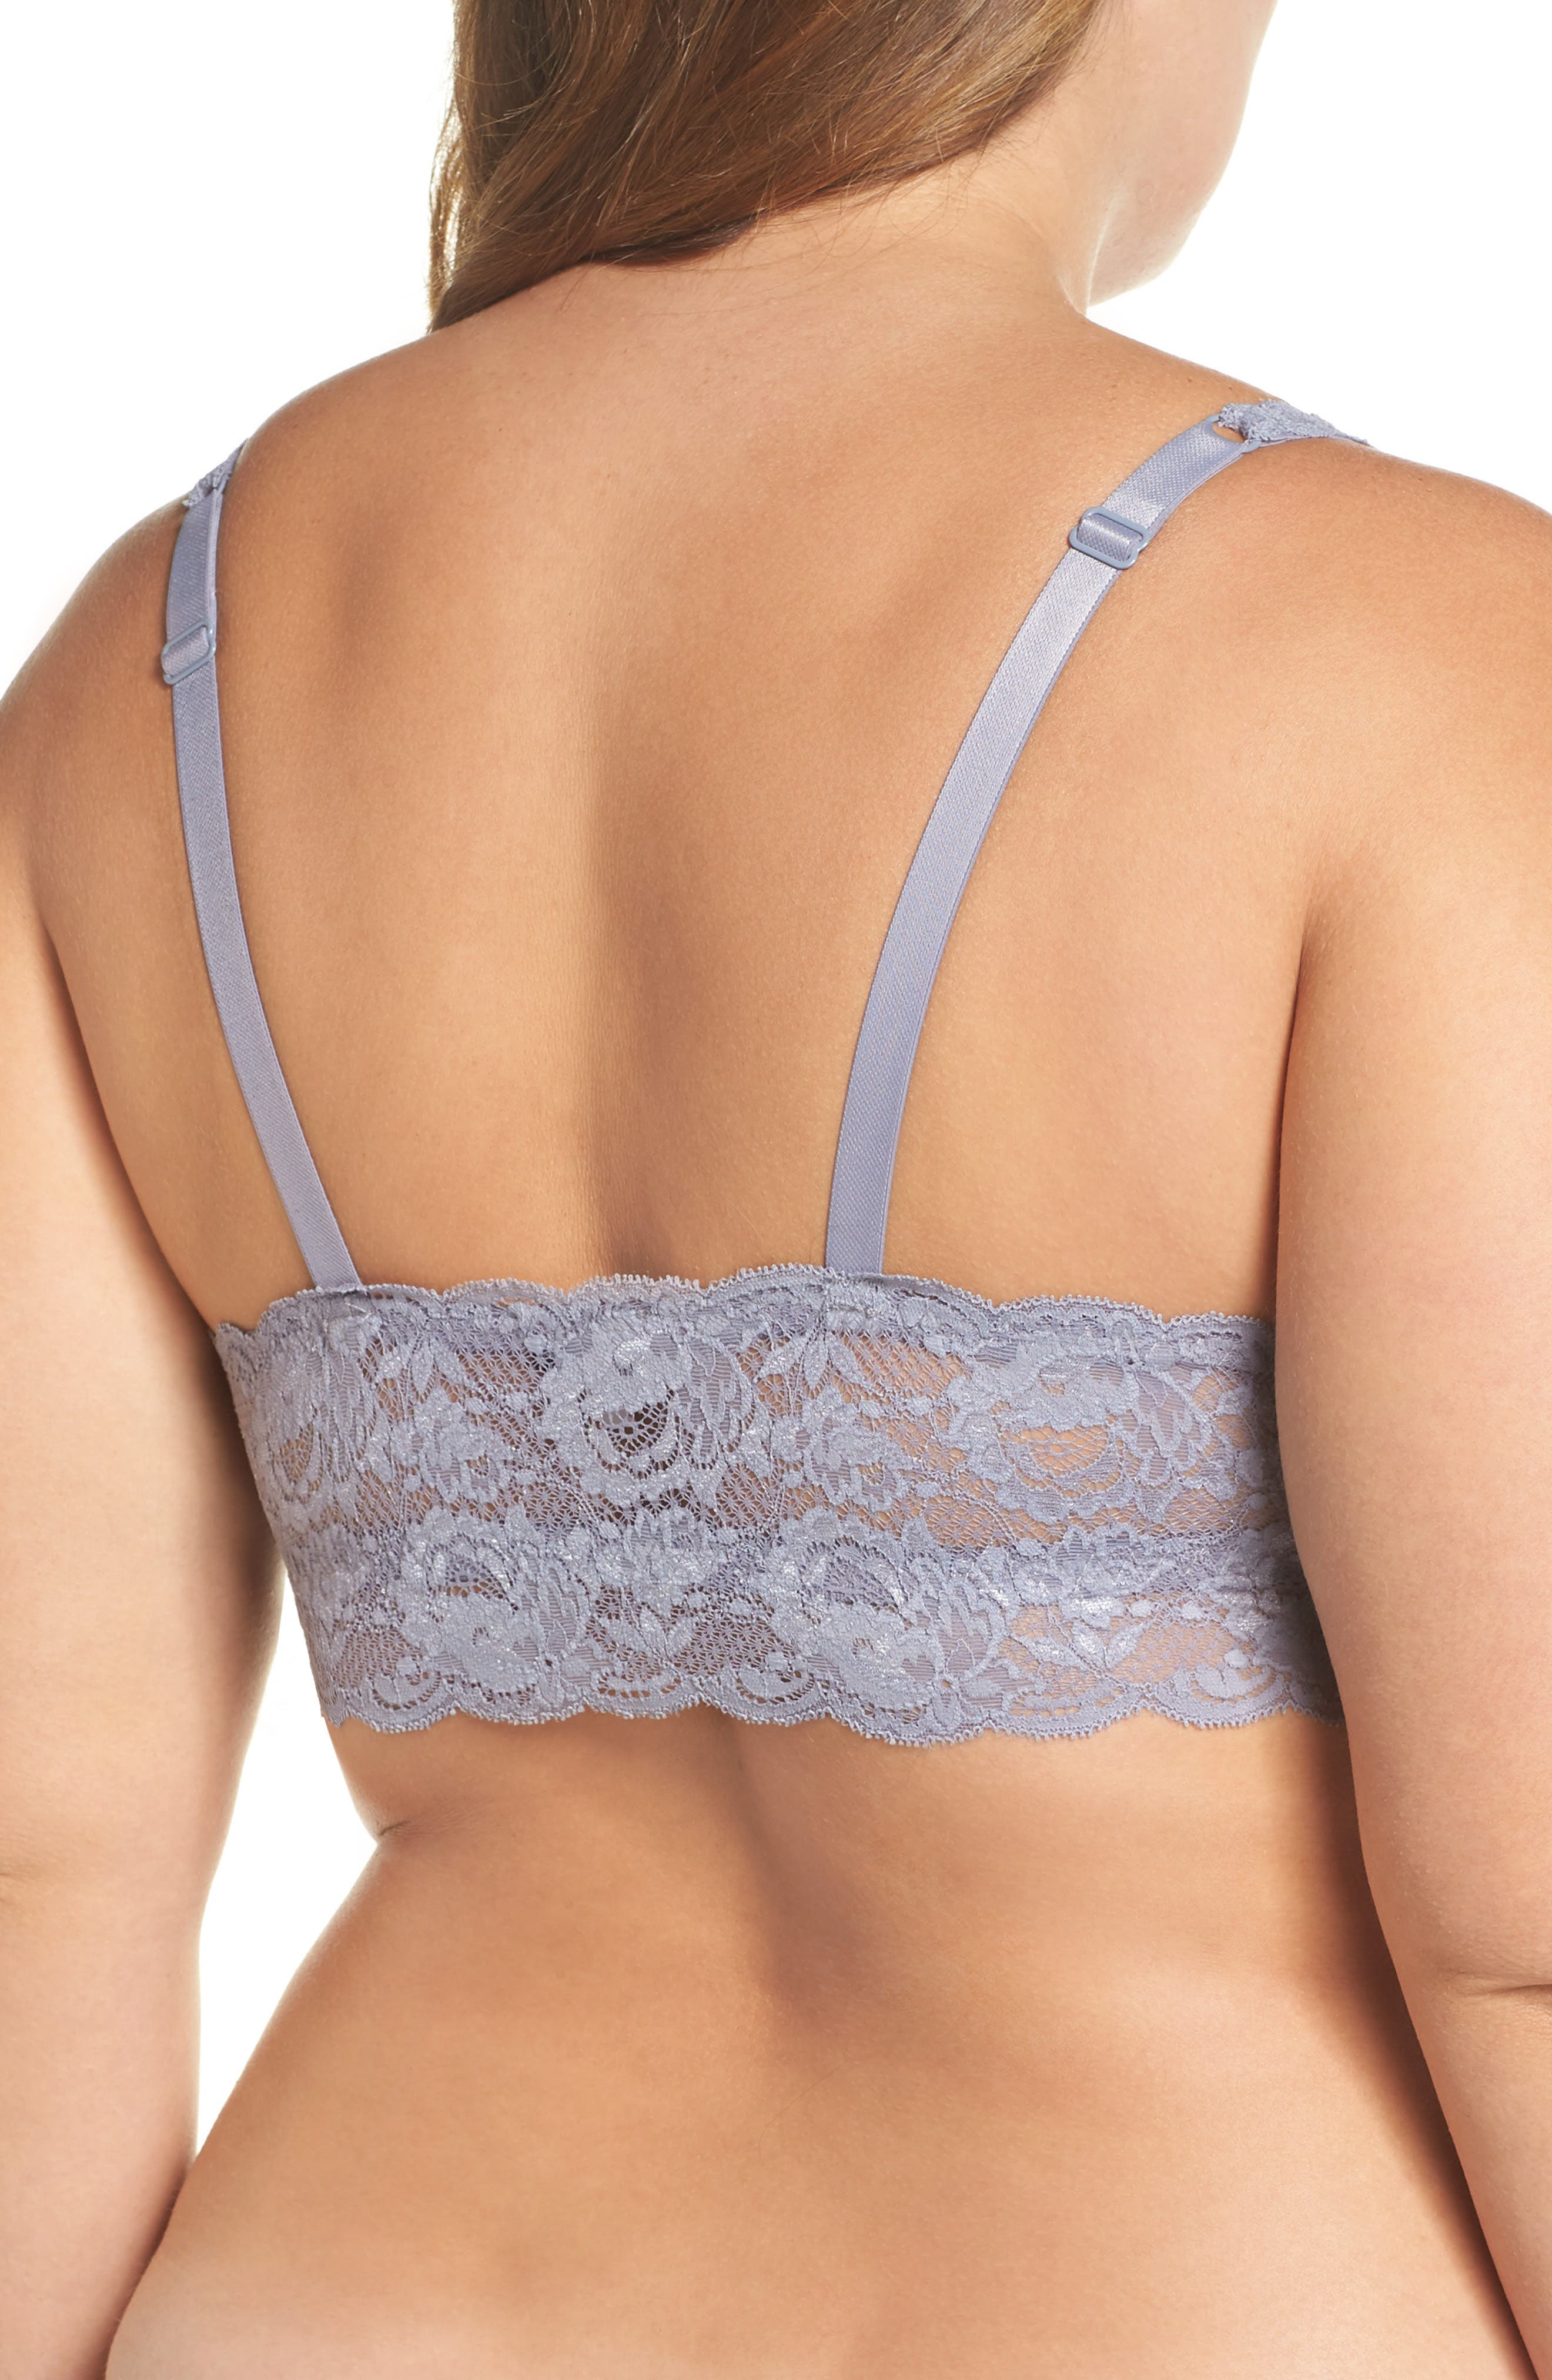 Never Say Never Soft Cup Nursing Bralette,                             Alternate thumbnail 2, color,                             Incenso